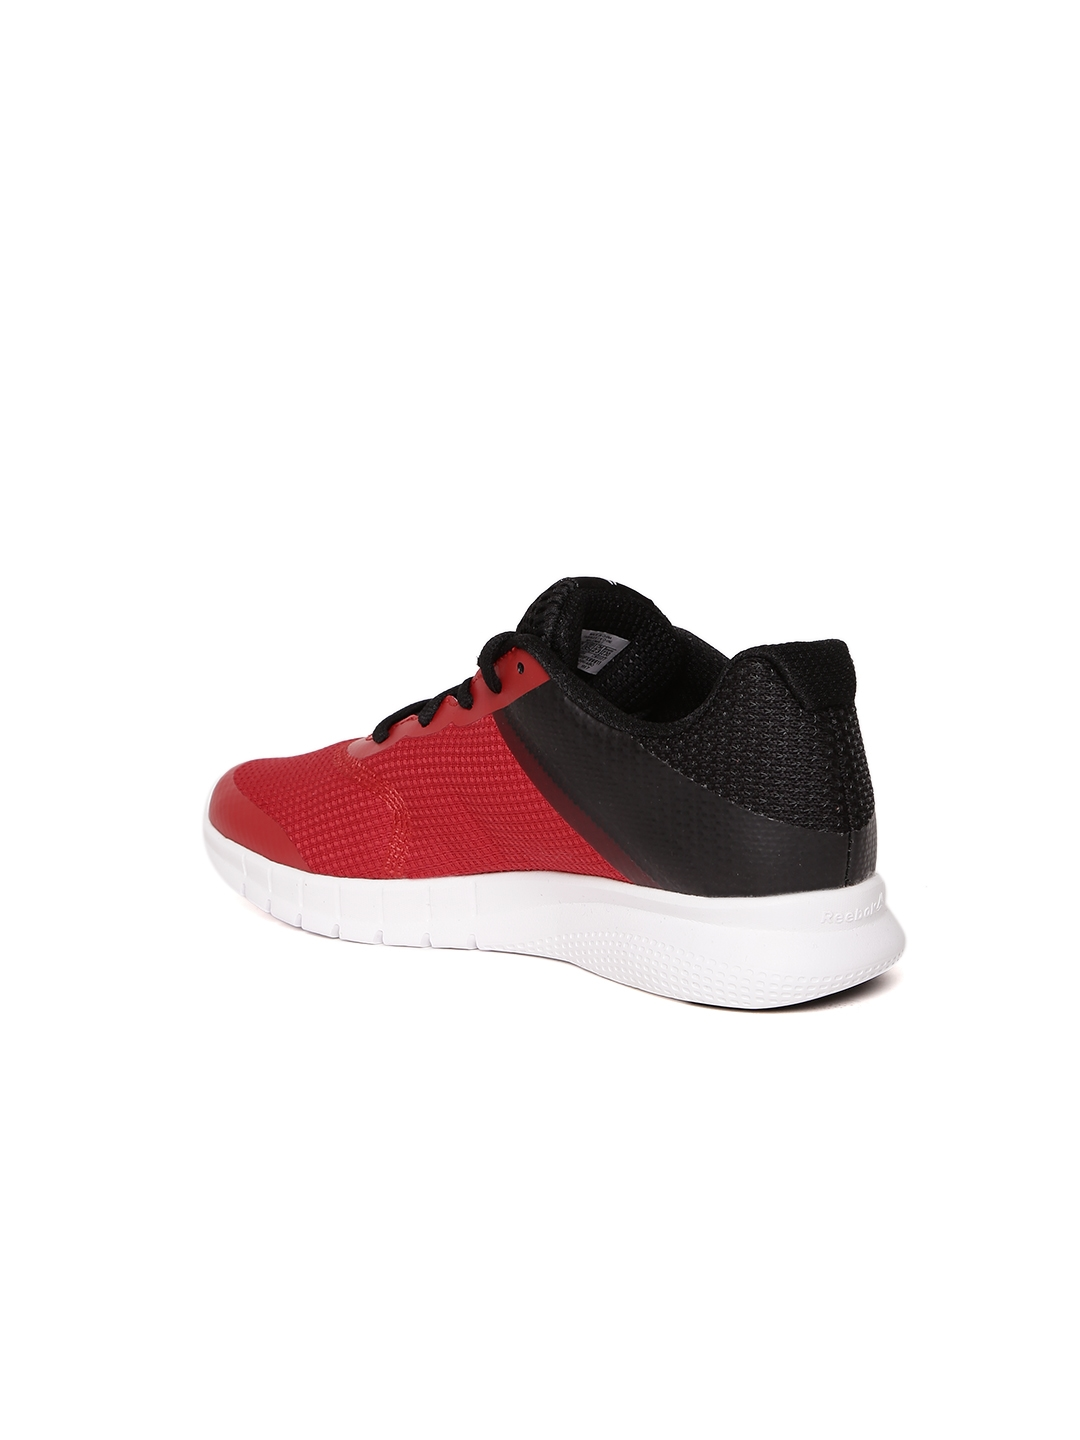 768d91a1141 Buy Reebok Boys Red   Black Instalite Woven Design Running Shoes ...